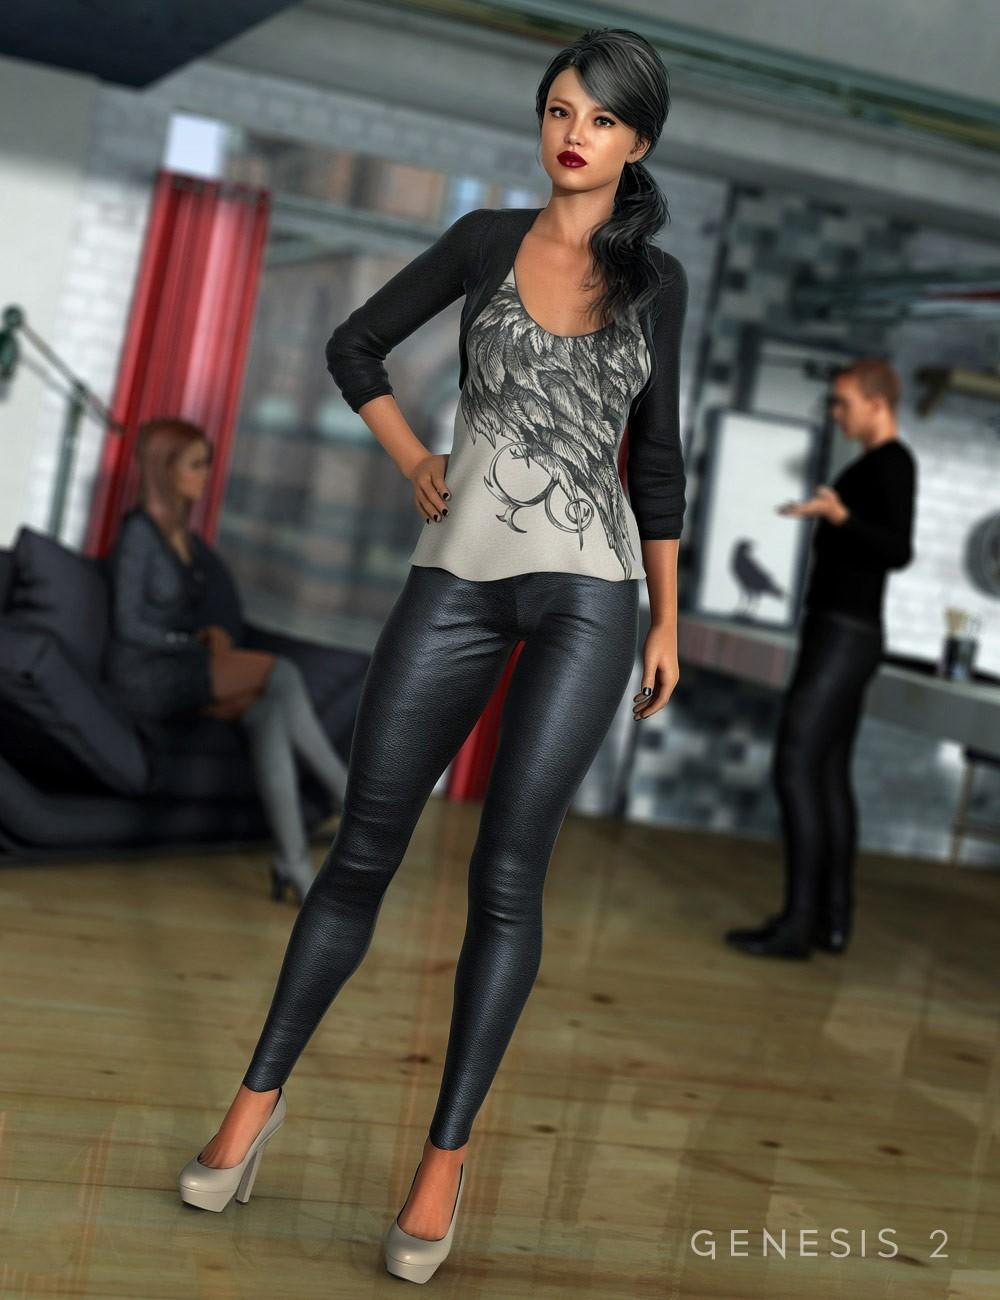 Weekend Wear for Genesis 2